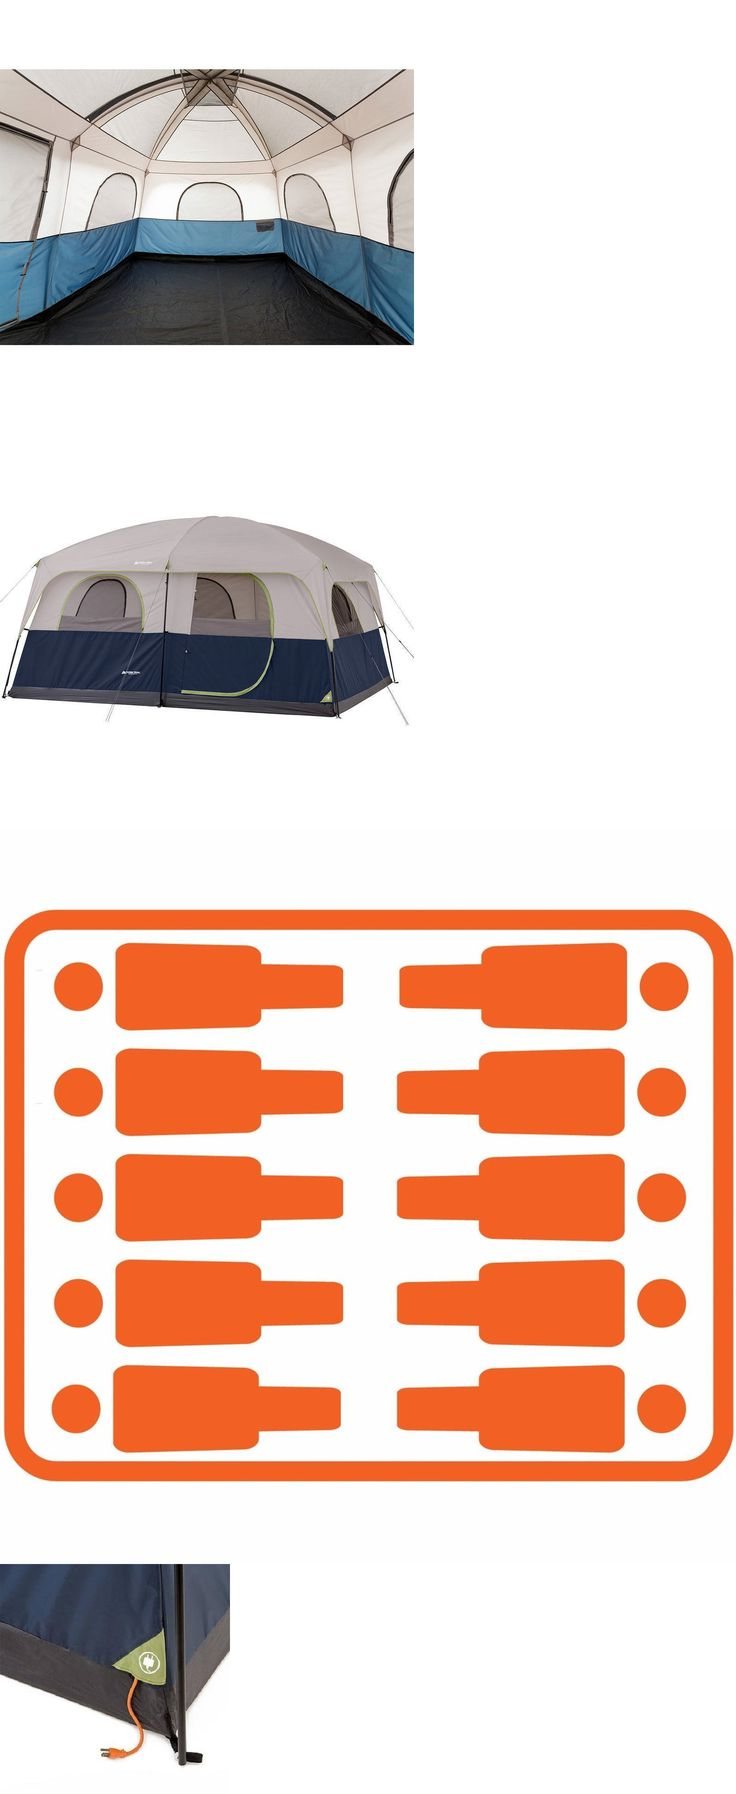 Tents 179010: Ozark 10 Person Tent Trail Camping Cabin Family 14 X 10 Insulated Waterproof -> BUY IT NOW ONLY: $182.65 on eBay!